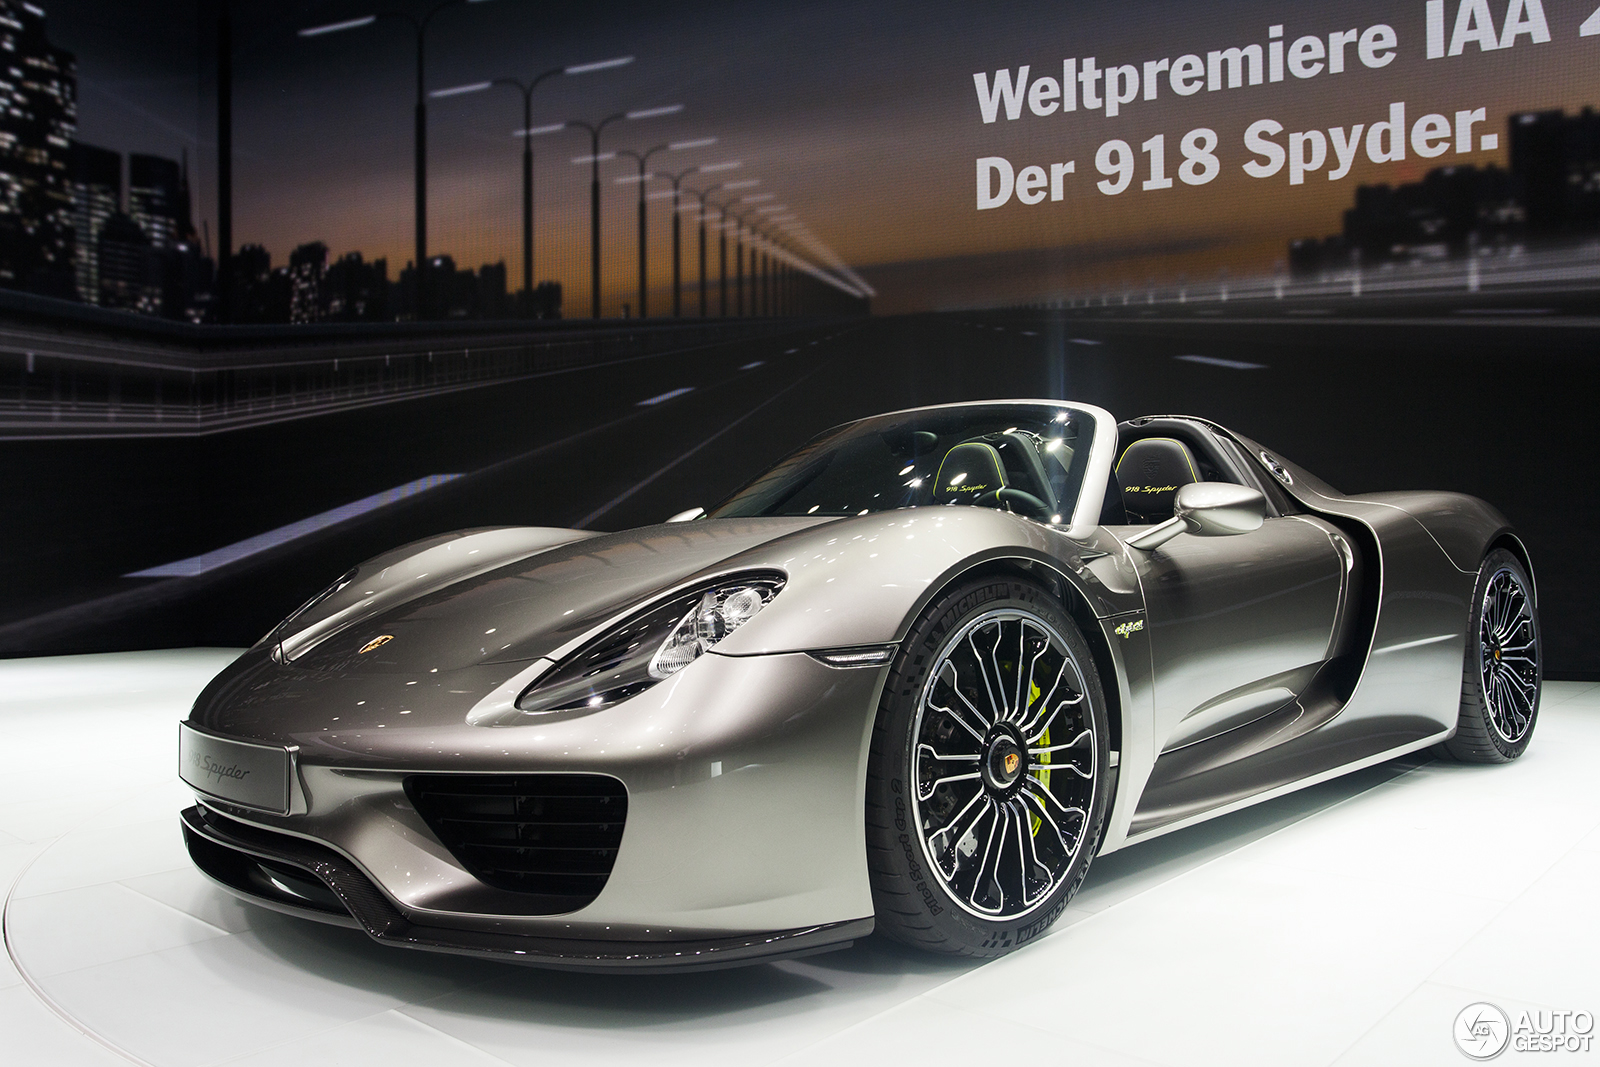 iaa 2013 porsche 918 spyder. Black Bedroom Furniture Sets. Home Design Ideas